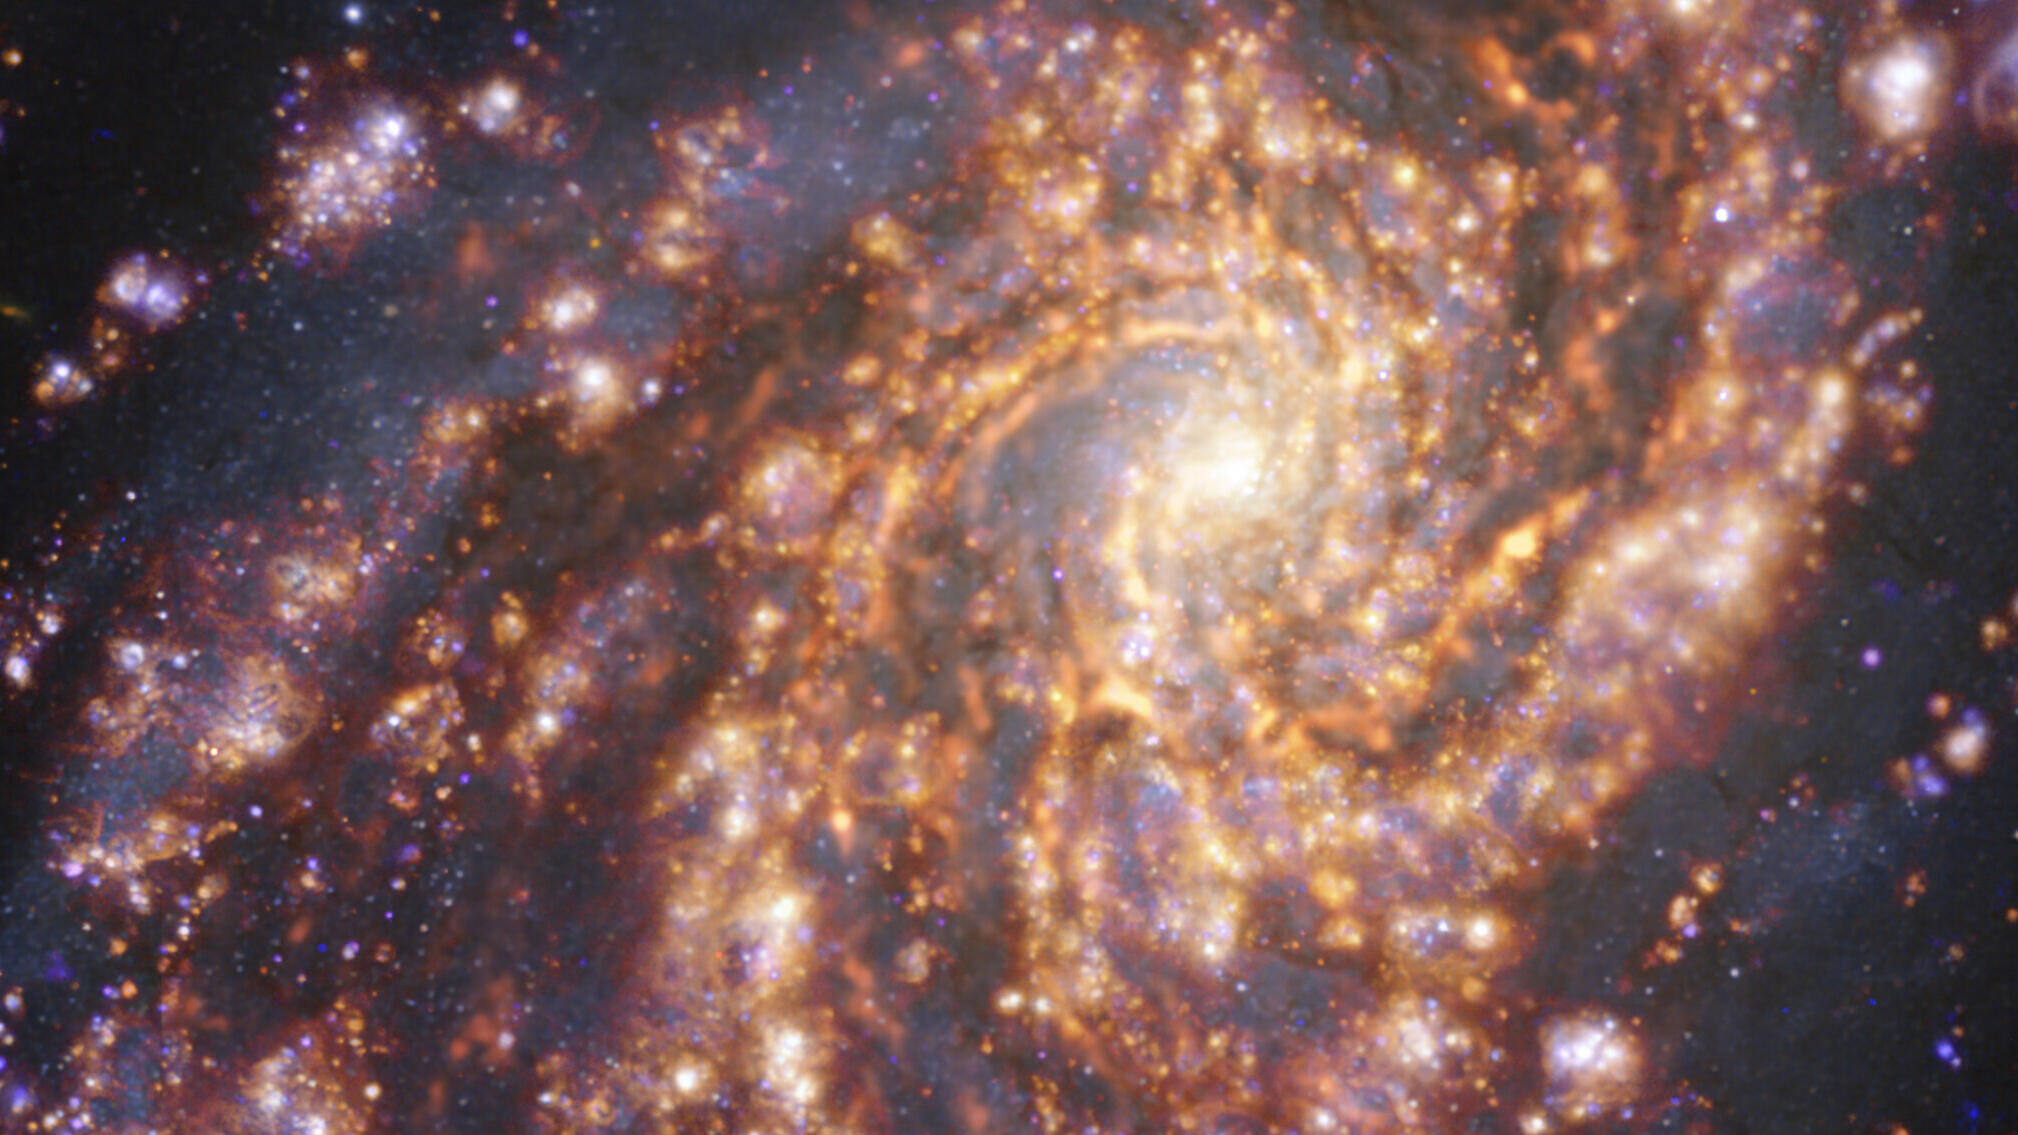 These stunning new images of nearby galaxies will blow your mind